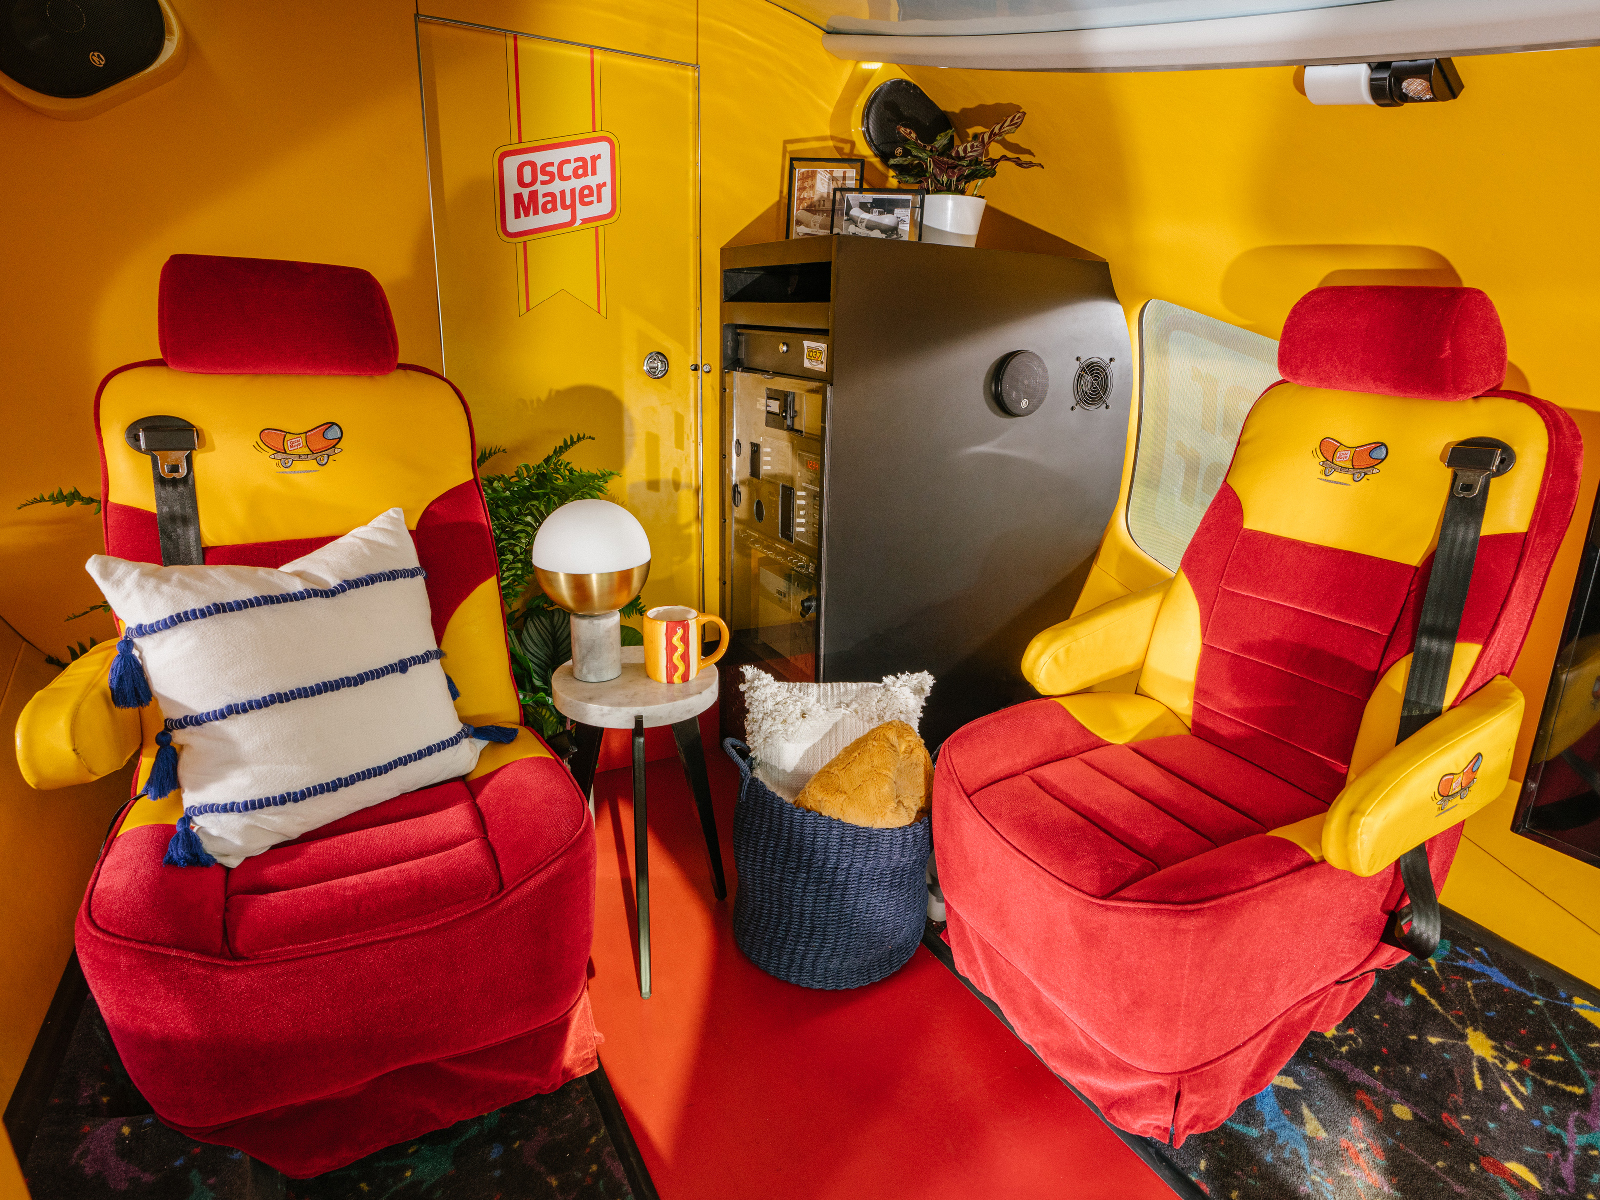 wienermobile-airbnb-4-FT-BLOG0719.jpg